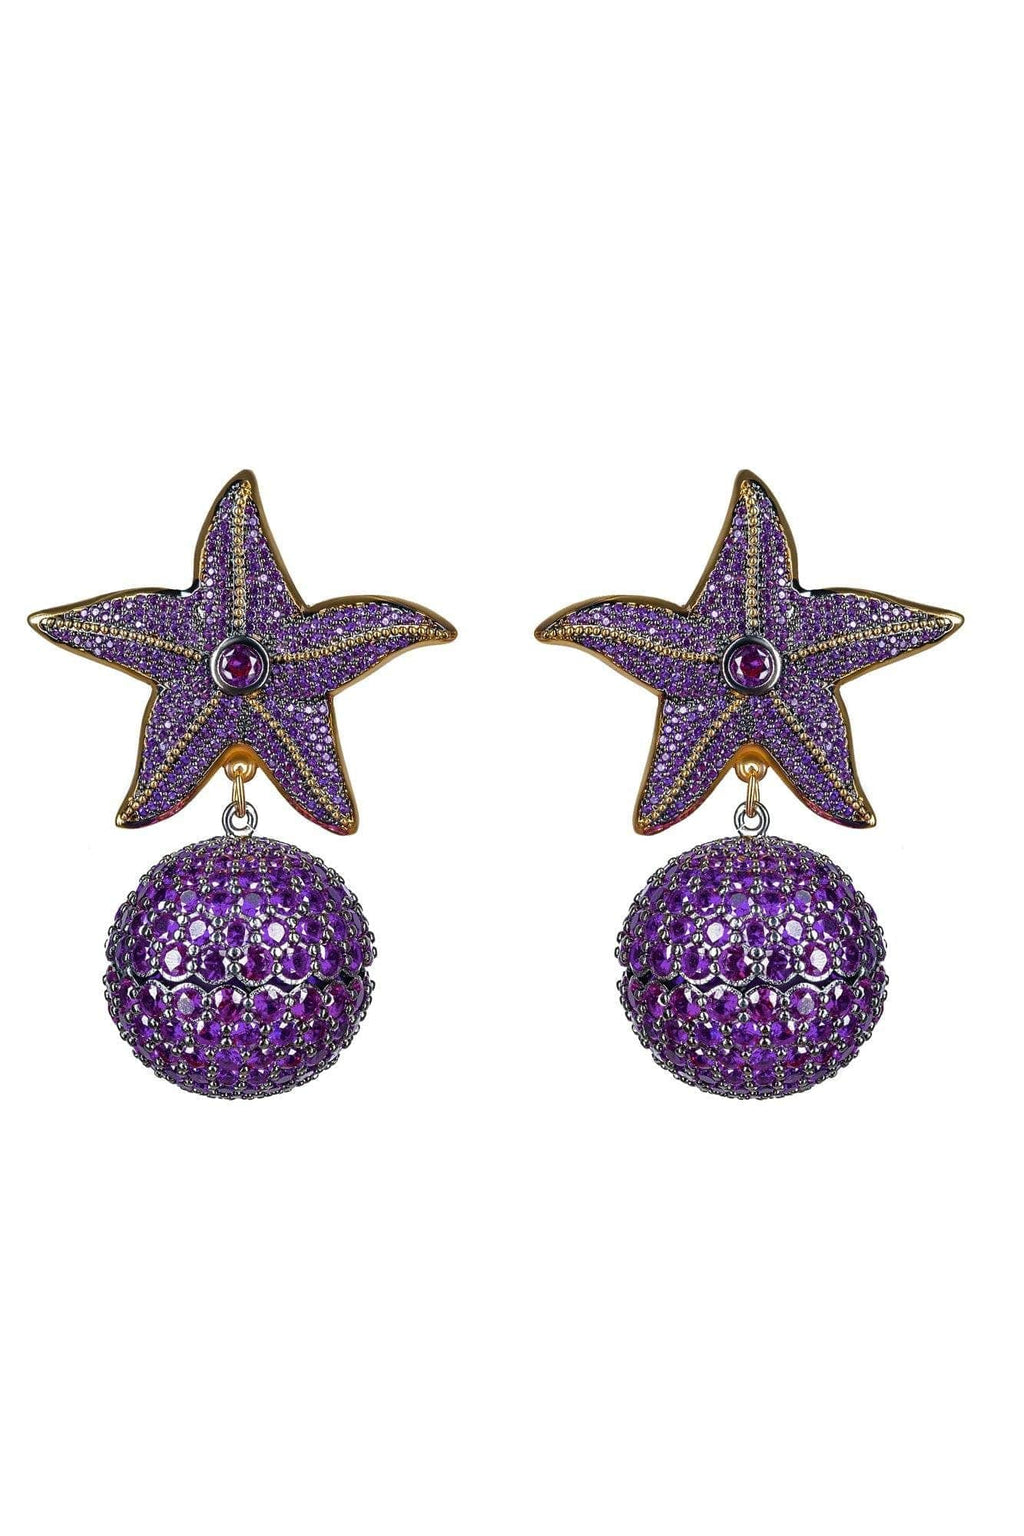 Starfish Amethyst Earrings - BYTRIBUTE